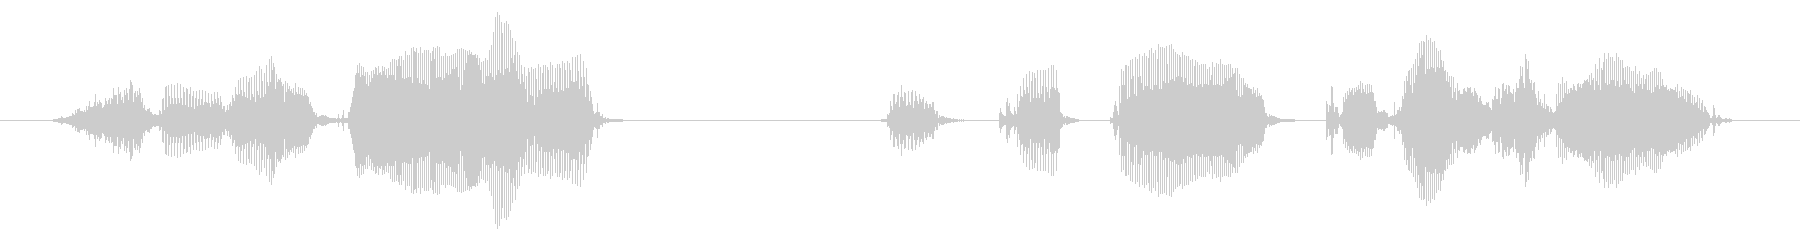 Then please answer's unreproduced waveform